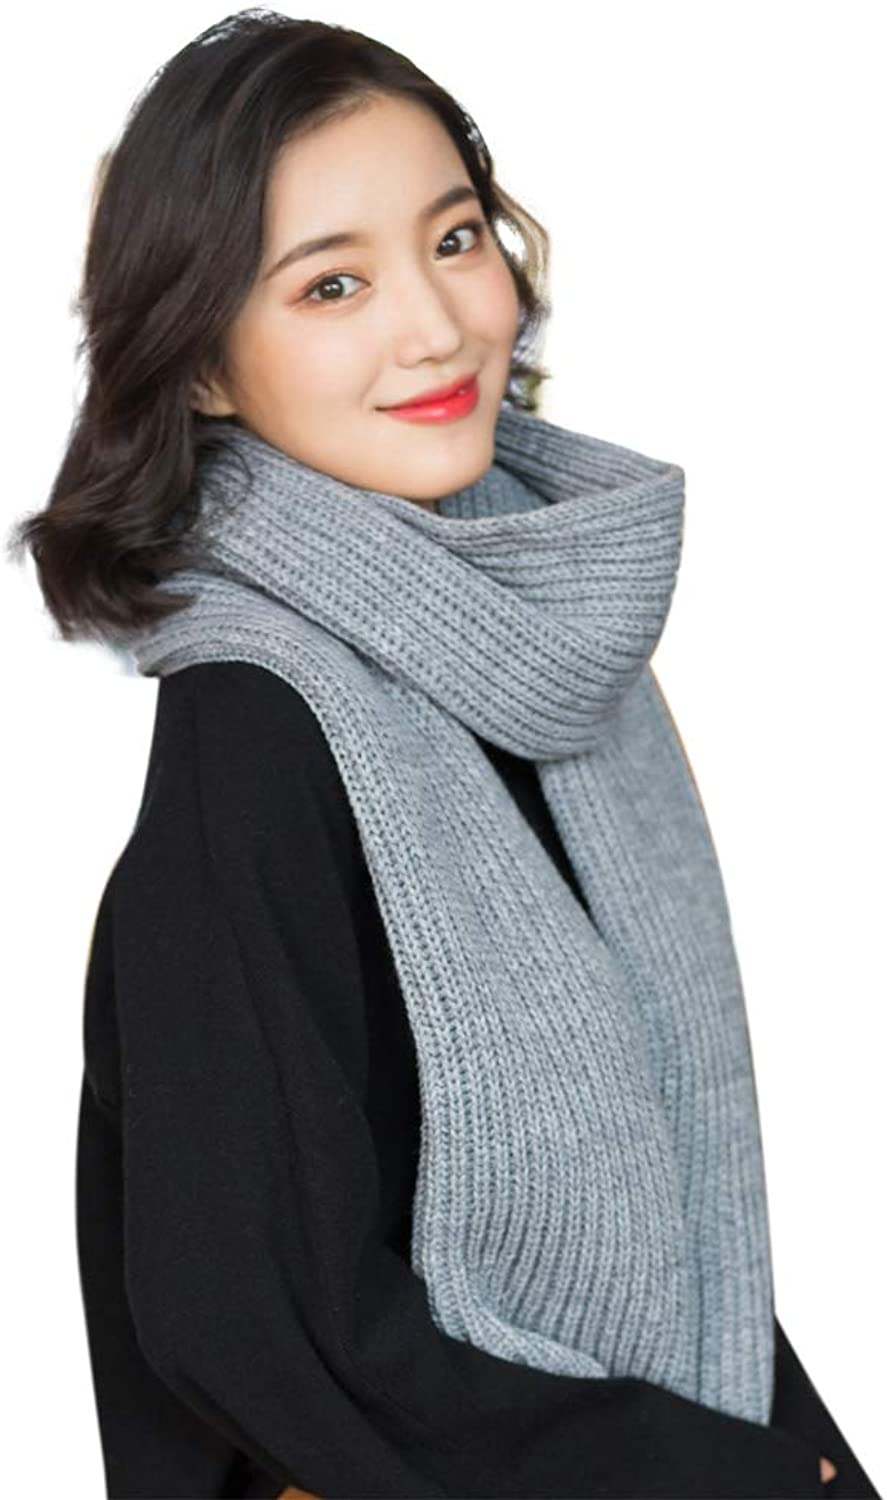 677888 Scarfs for Women Winter Student Korean Version of the Wild Wool Knit Thick Solid color Simple Grey